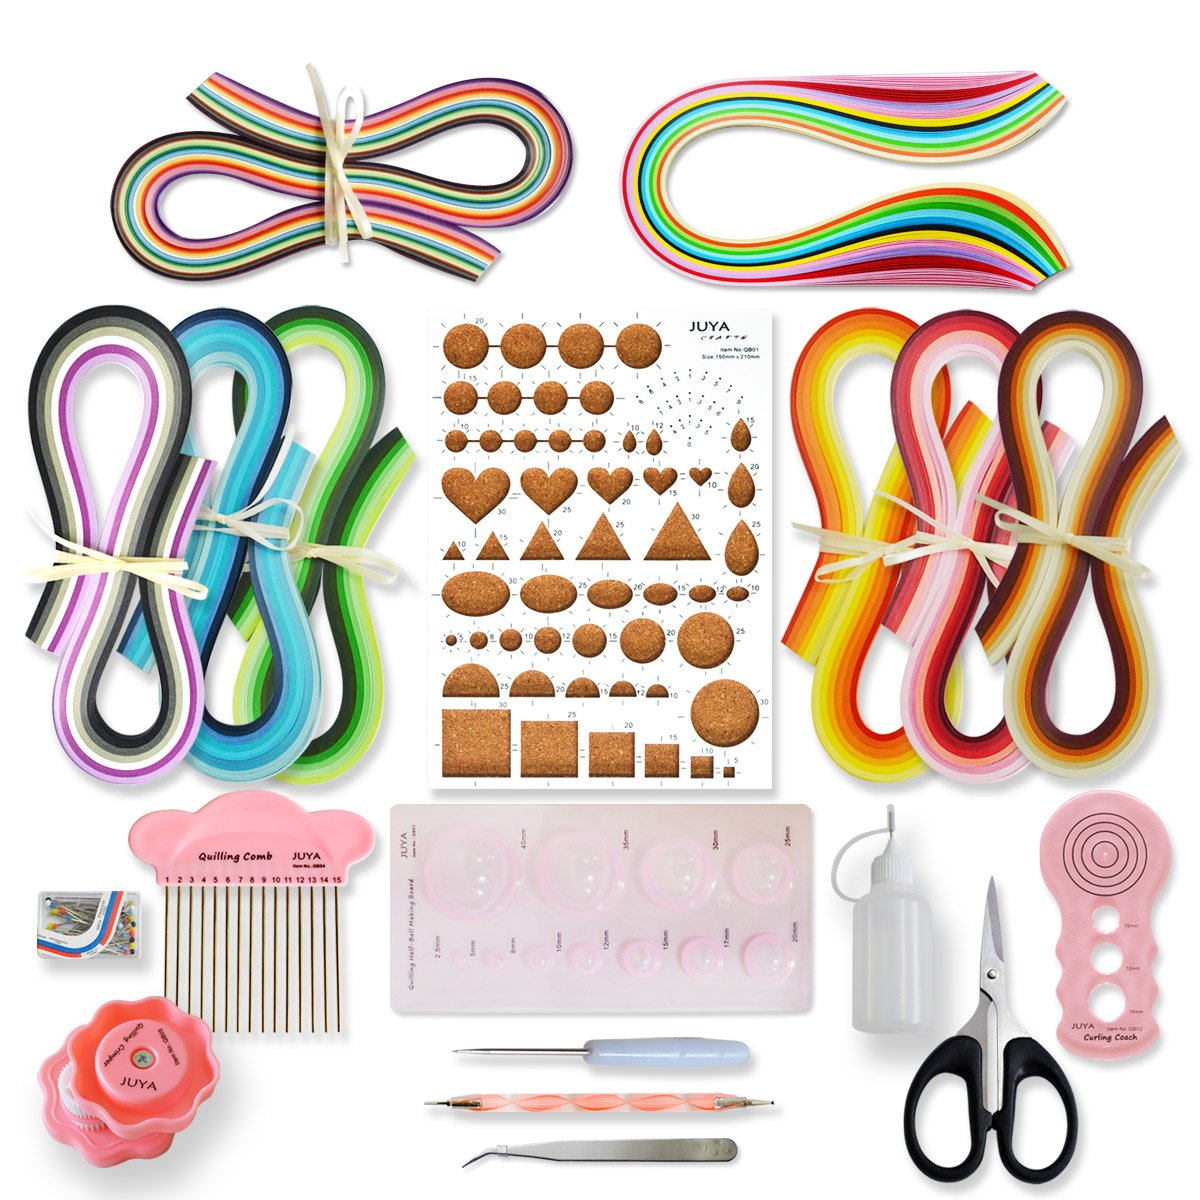 JUYA Paper Quilling Kit with Pink Tools 960 Strips Board Mould Crimper Coach Comb (Paper Width 3mm)